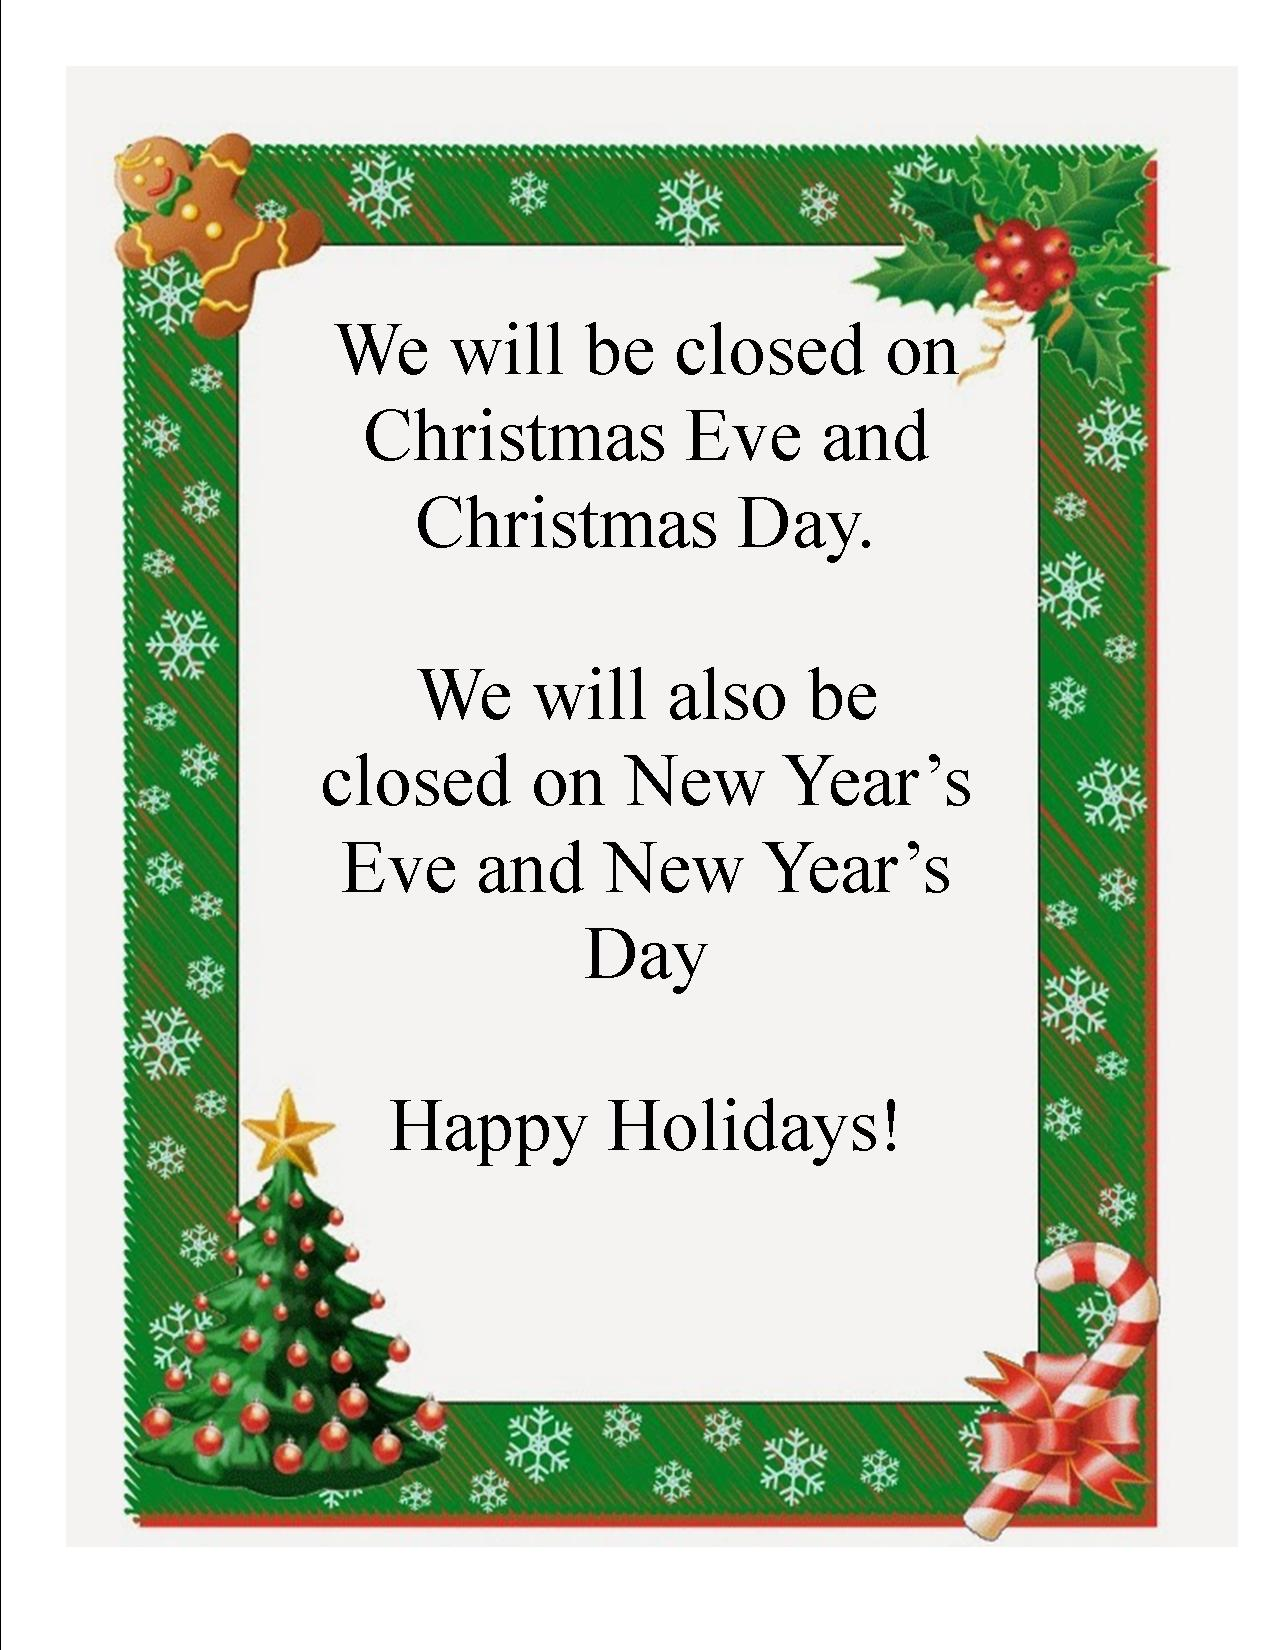 Christmas Closing sign 2014 jpeg | Mayville Public Library